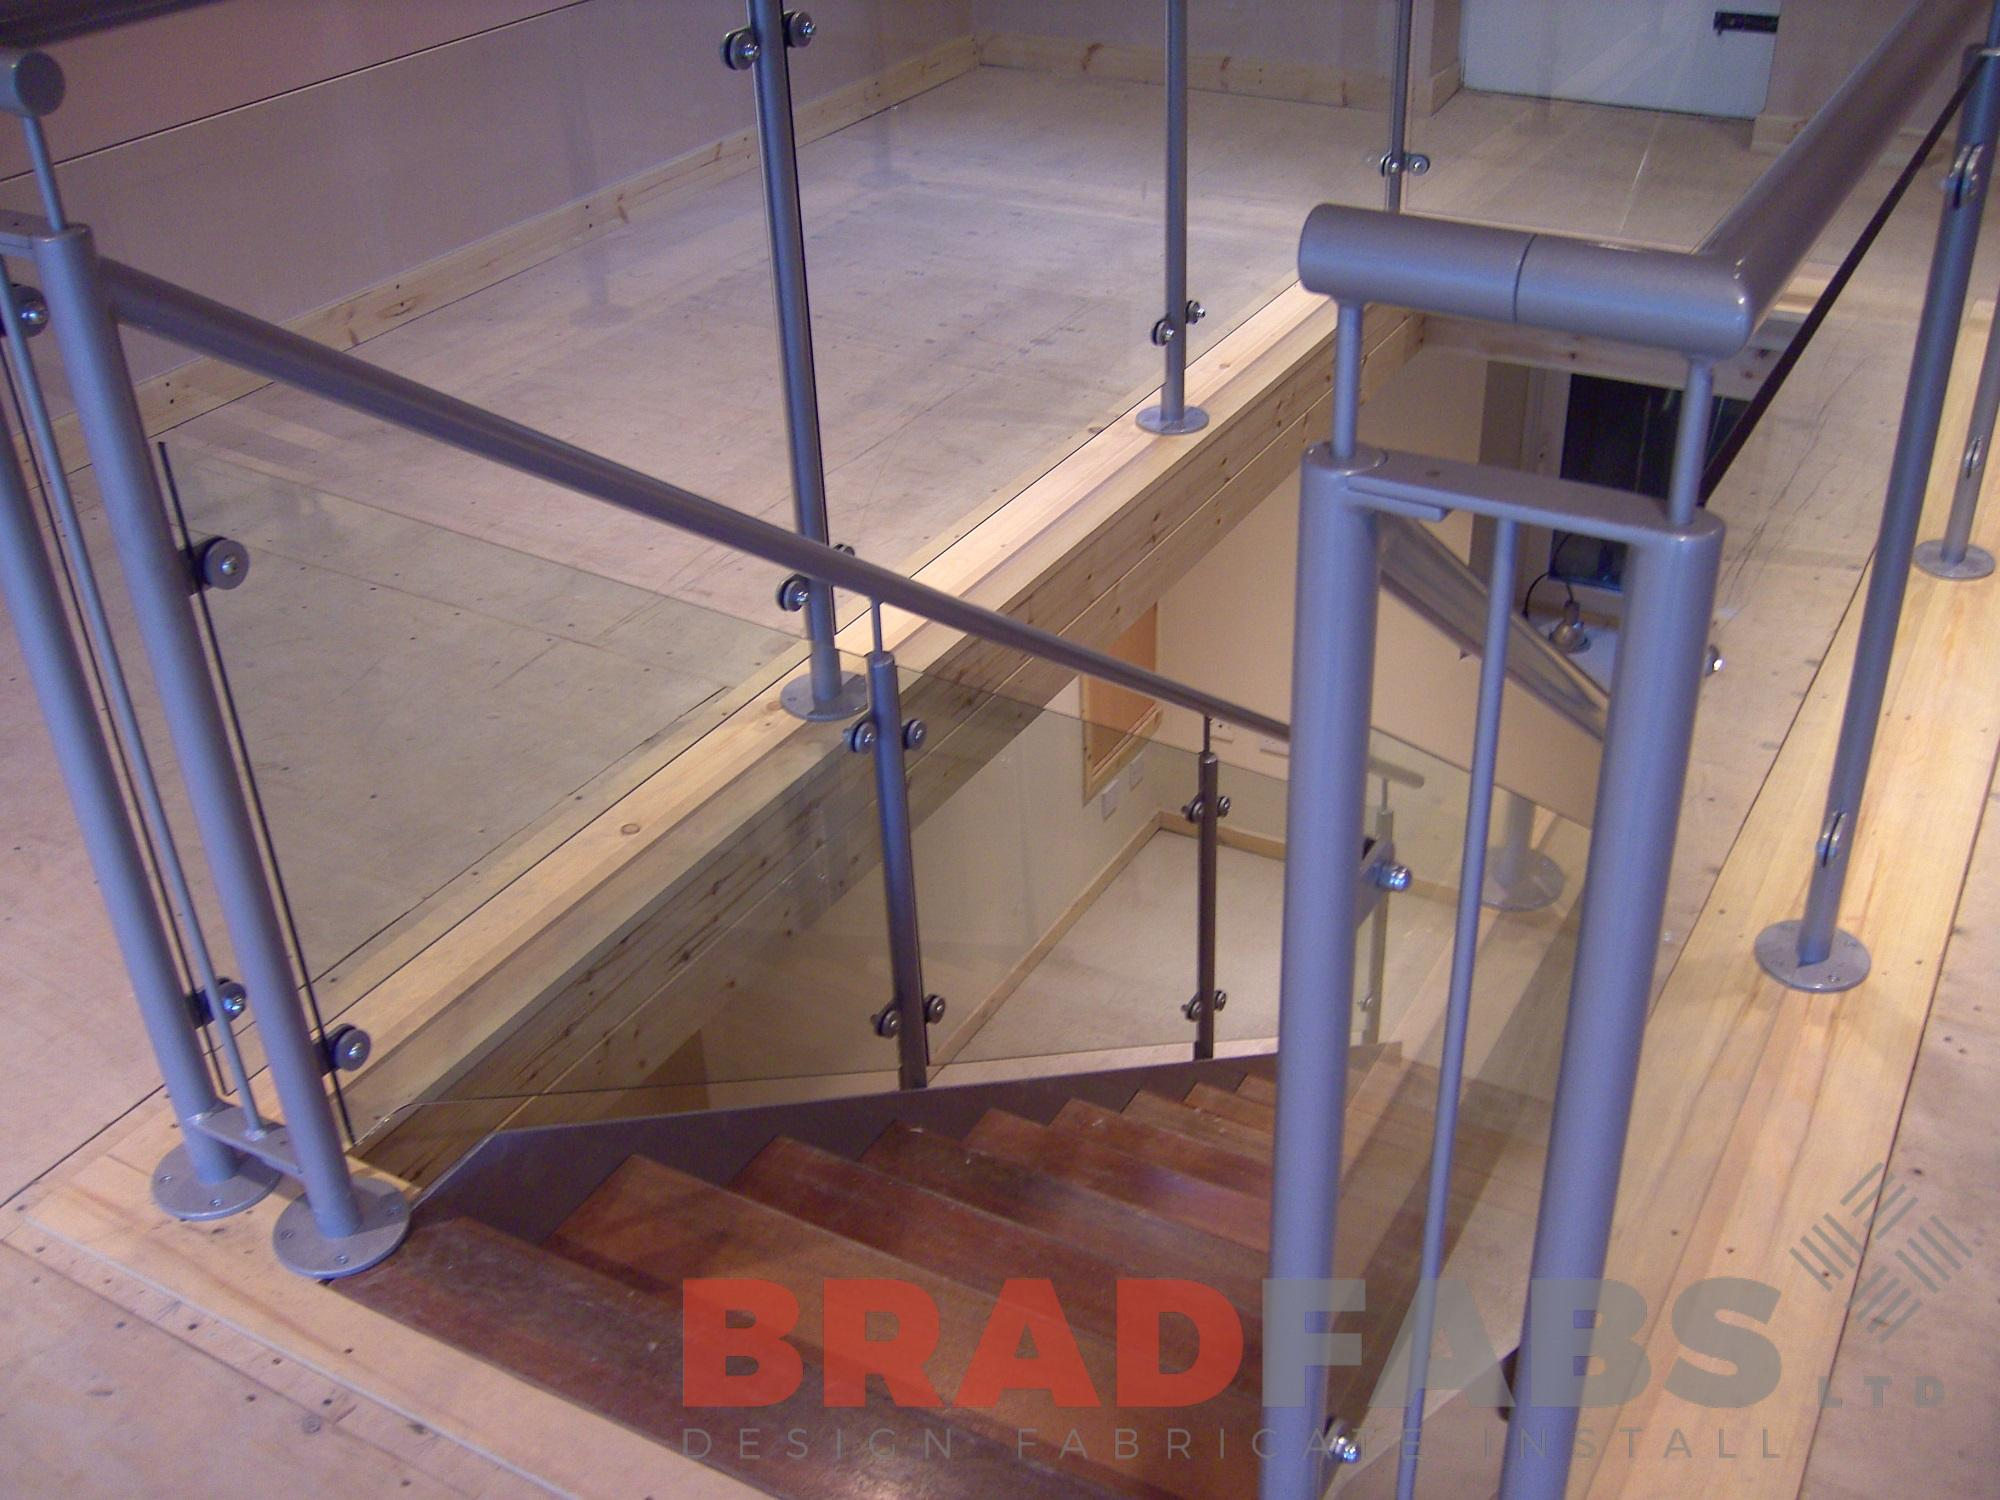 Straight staircase mild steel handrails powder coated glass balustrade